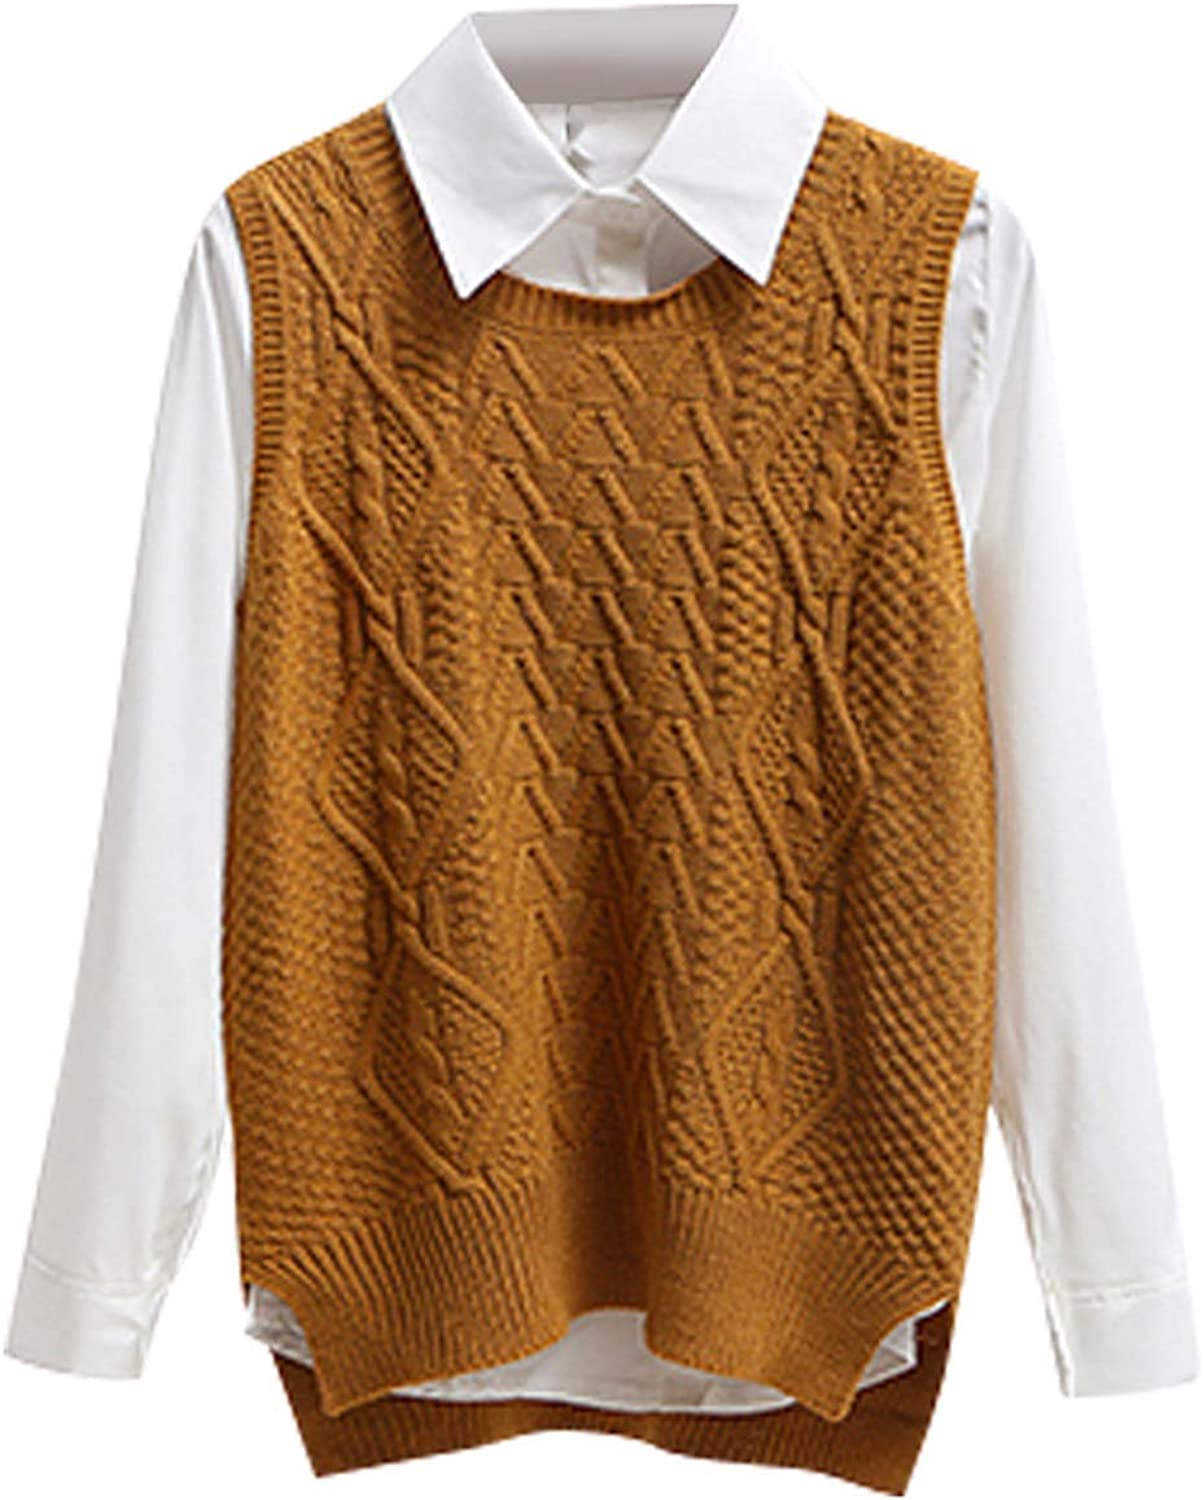 Sleeveless sweater vest womens sweaters bellevue investments that shoot